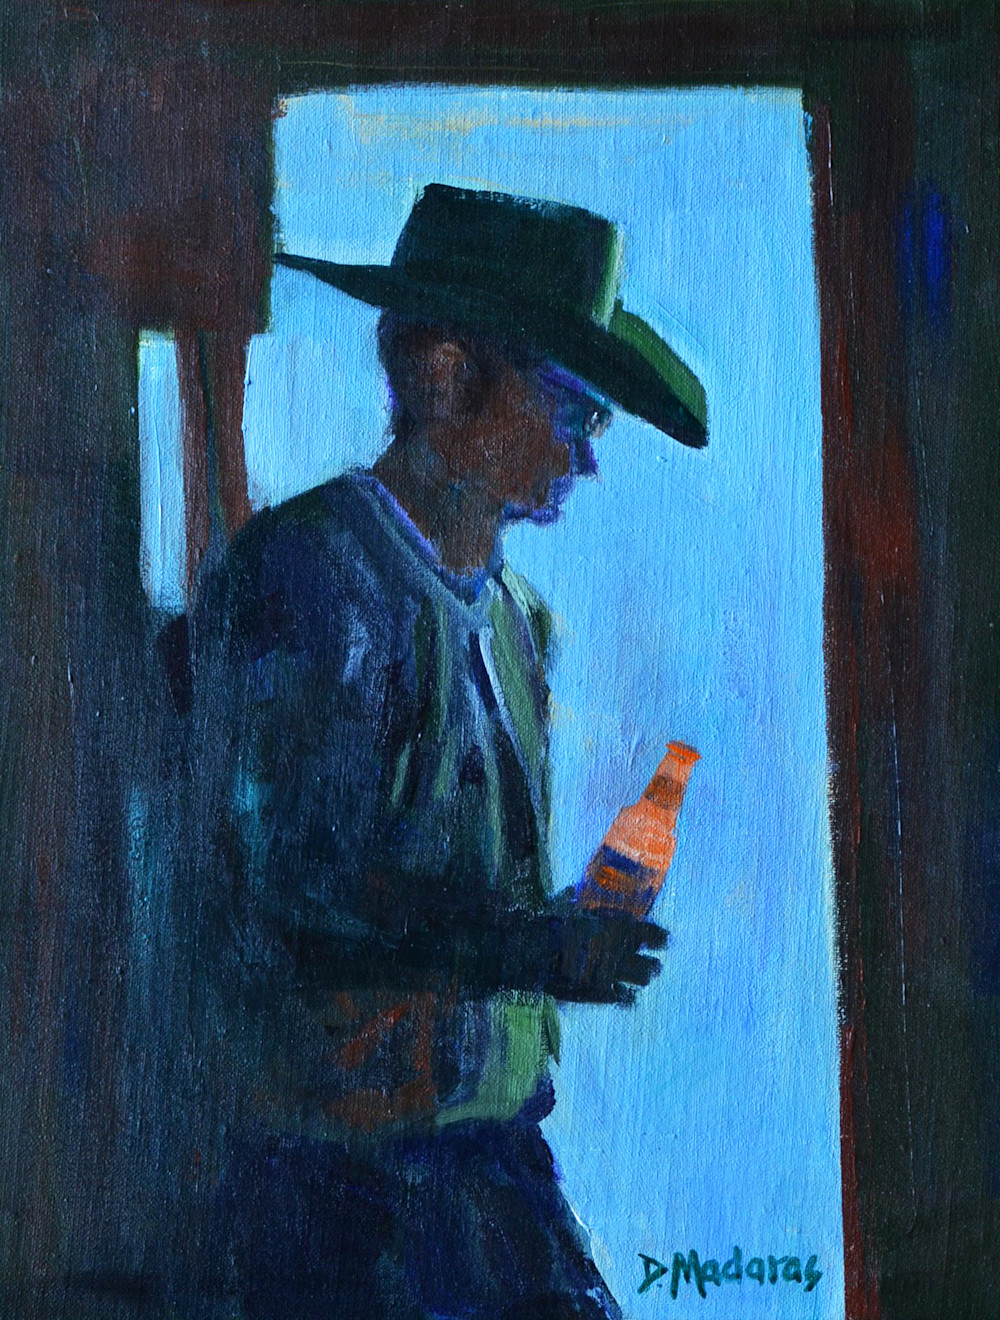 The Beer Guy | Southwest Art Gallery Tuson | Diana Madaras